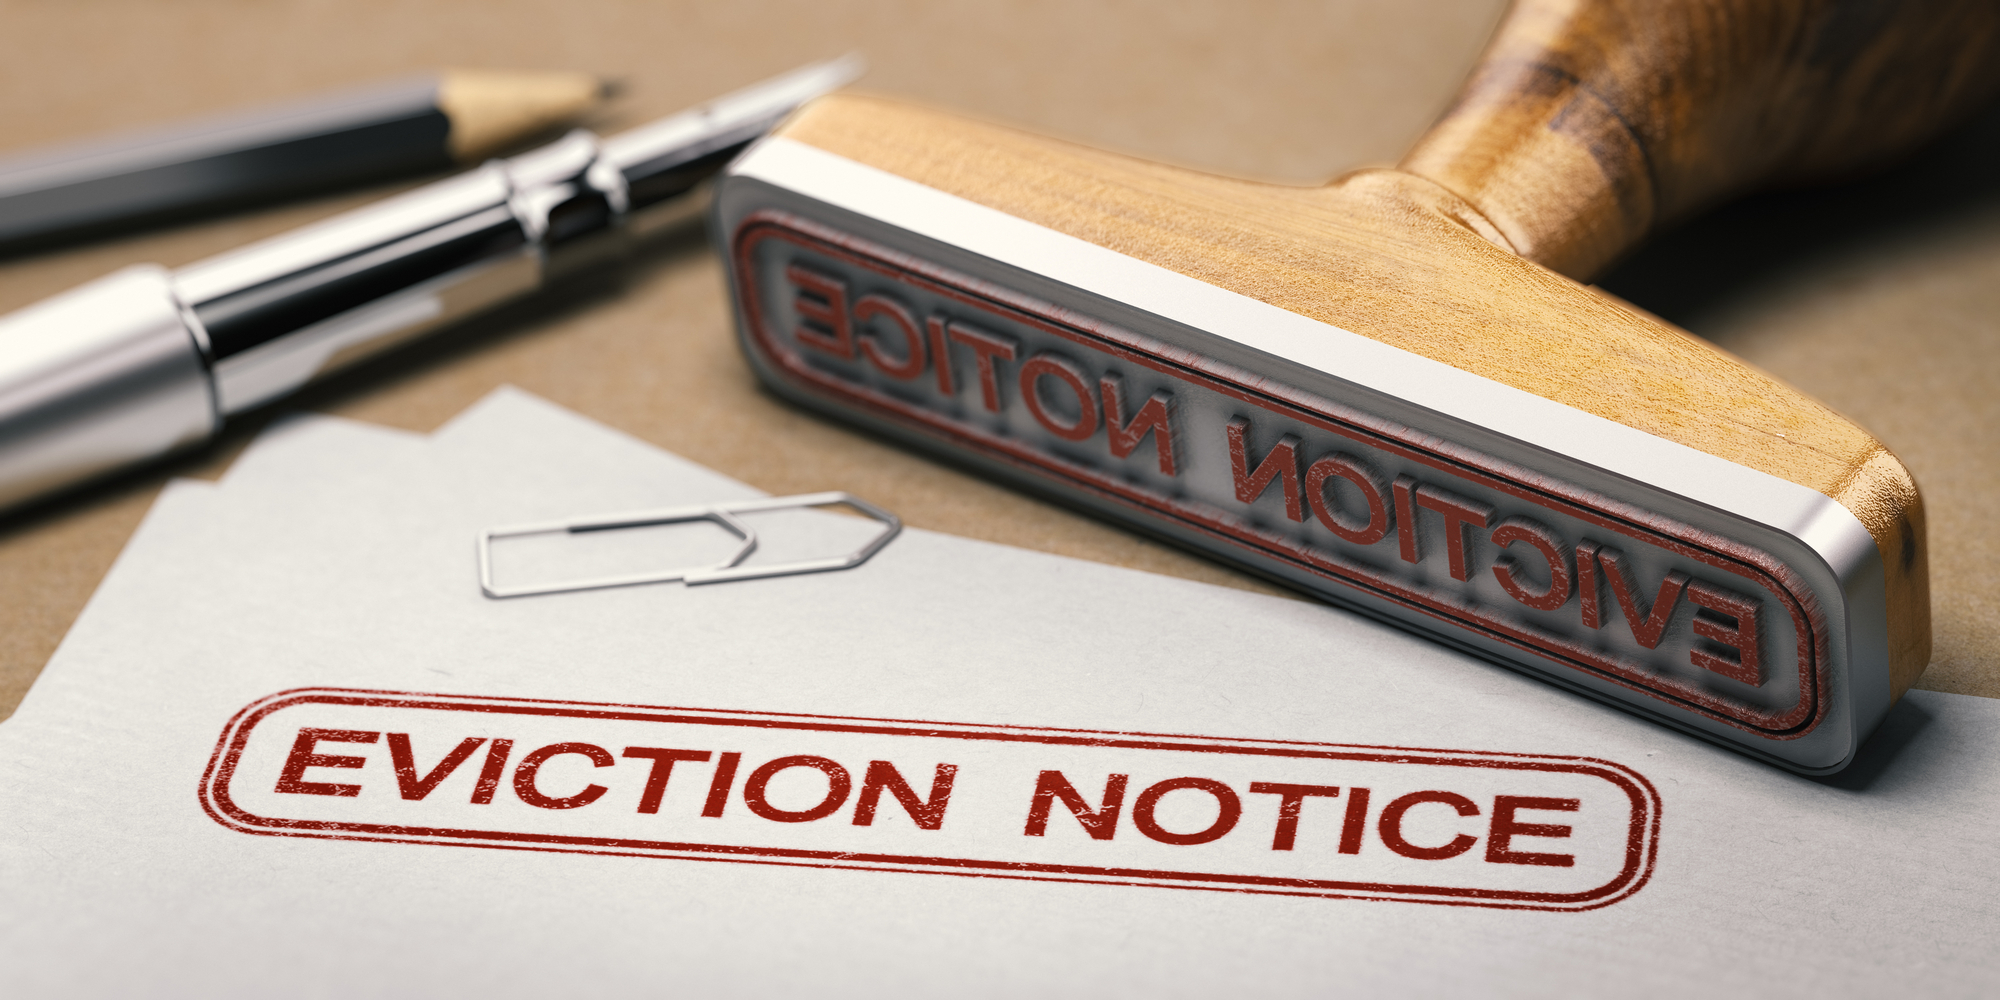 3D illustration of a rubber stamp with the text eviction notice printed on a document